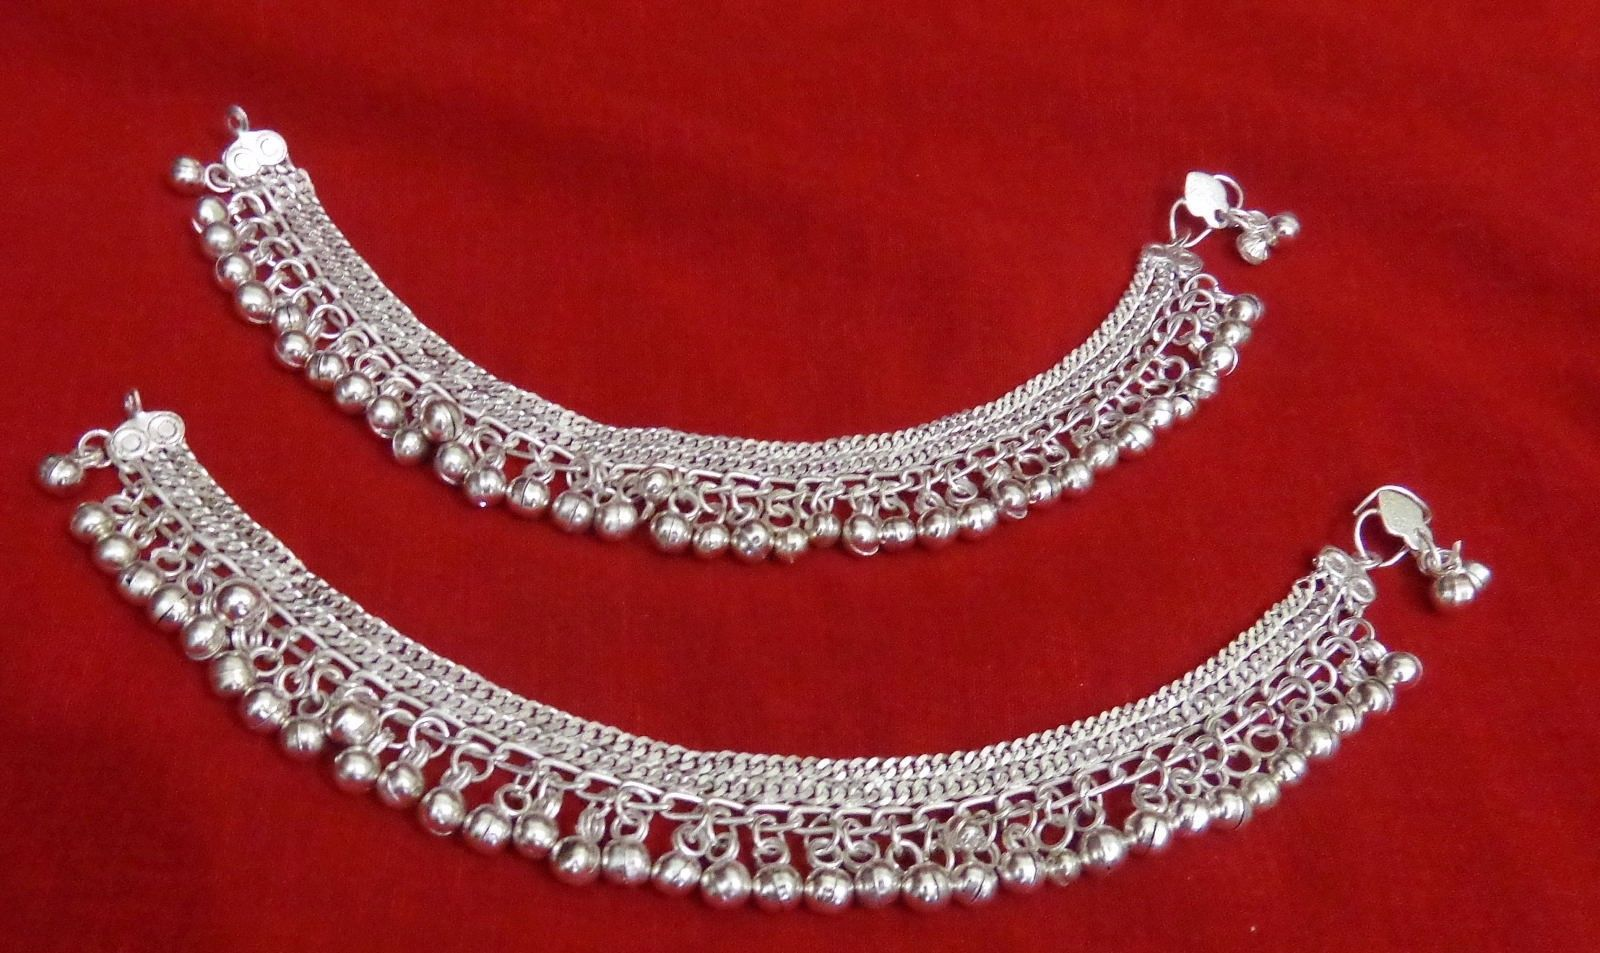 Tribal Kuchi Silver Bells Lot 2 Anklet Ankle Bracelet Belly Dance Jewelry India | eBay